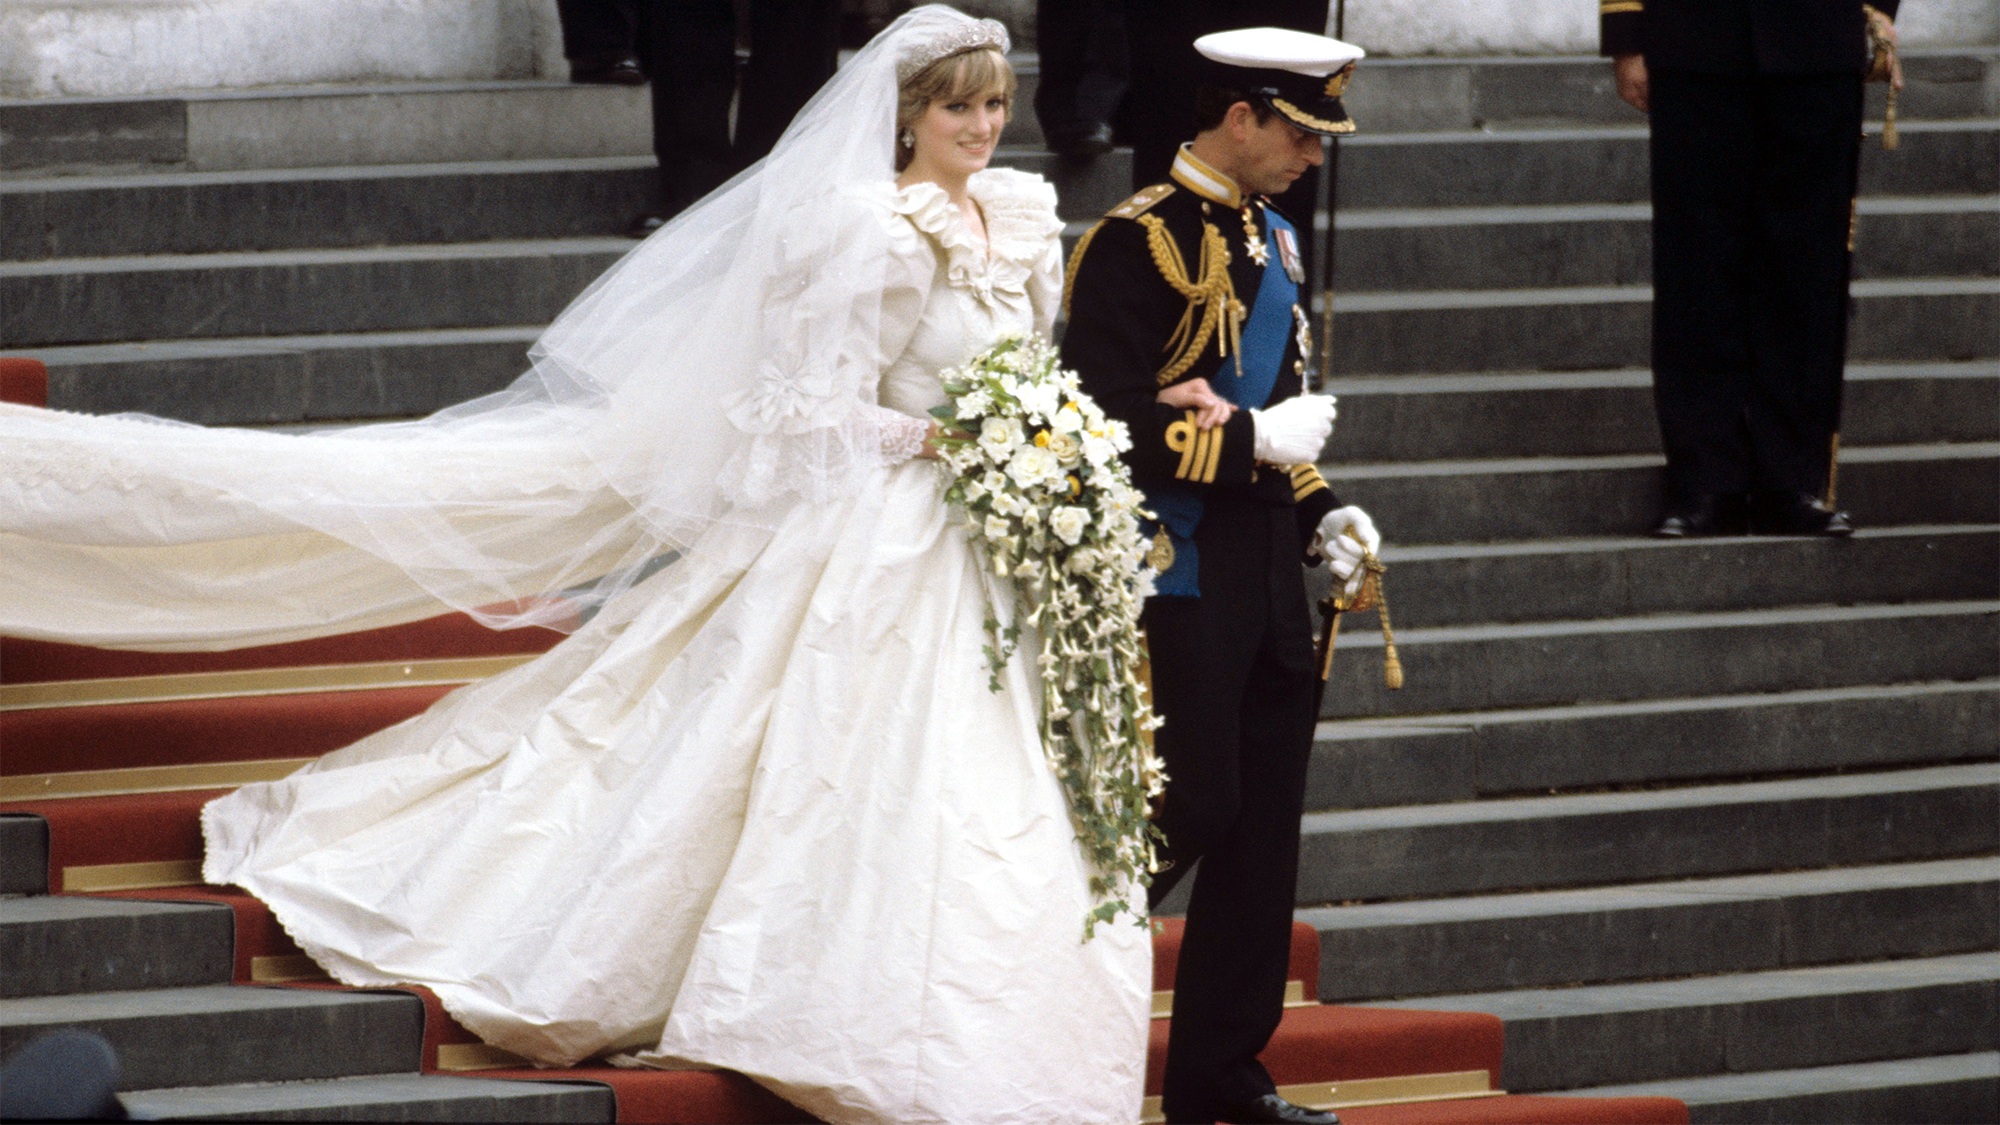 These Are The Fragrances That Princess Diana Kate Middleton And Mille Shopia Top Creme Beige M Queen Elizabeth Wore On Their Wedding Days